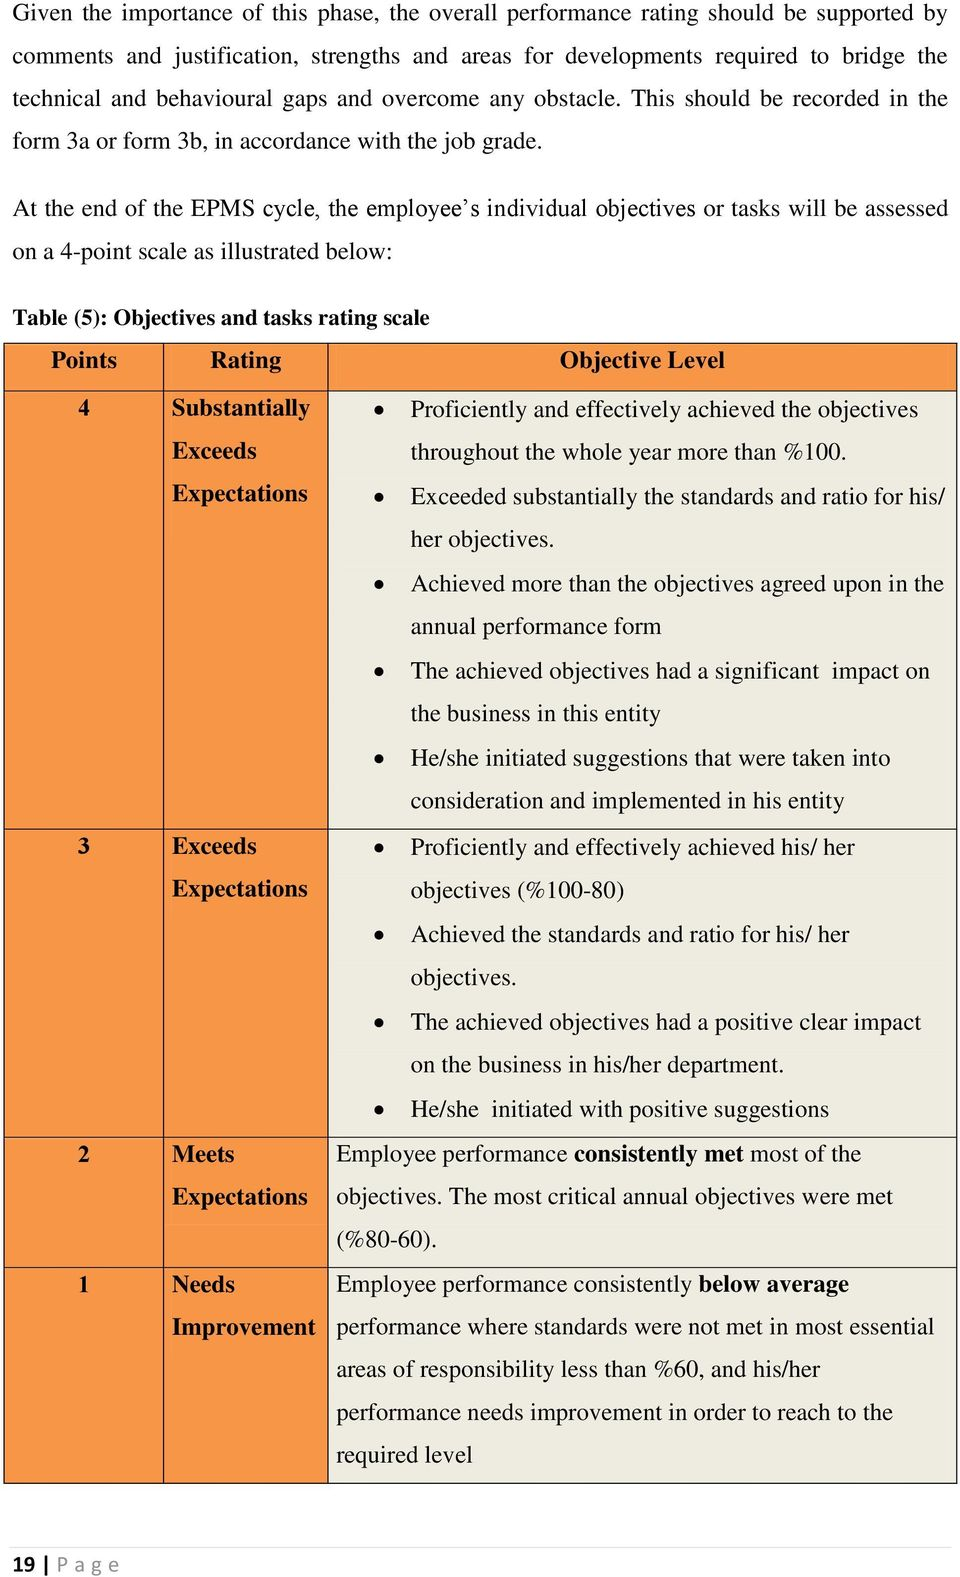 At the end of the EPMS cycle, the employee s individual objectives or tasks will be assessed on a 4-point scale as illustrated below: Table (5): Objectives and tasks rating scale Points Rating